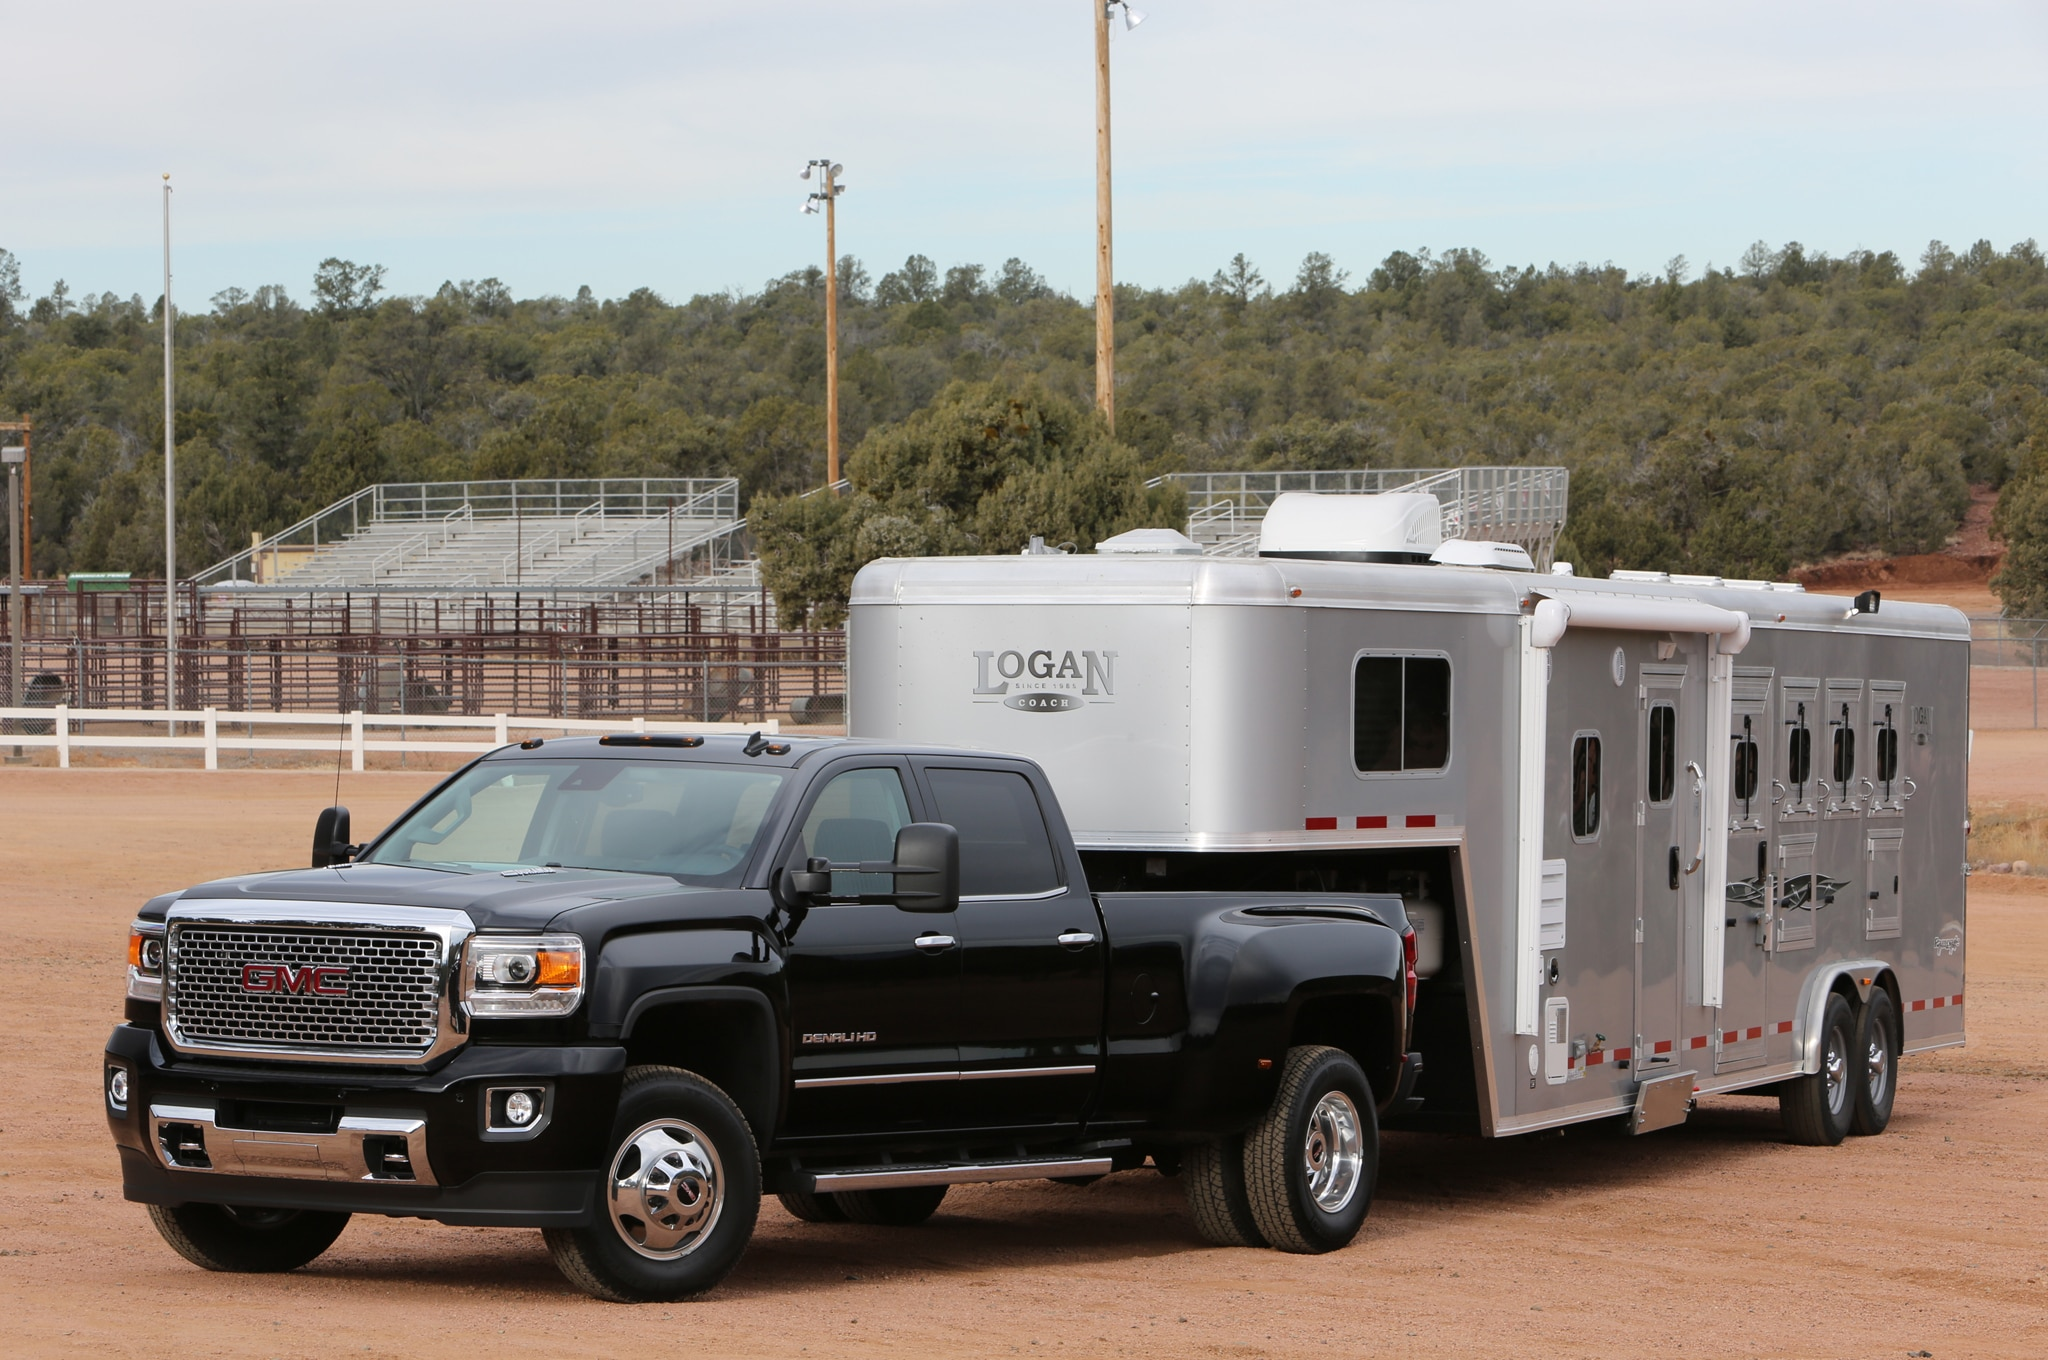 2015 GMC Sierra 3500HD Denali with horse trailer